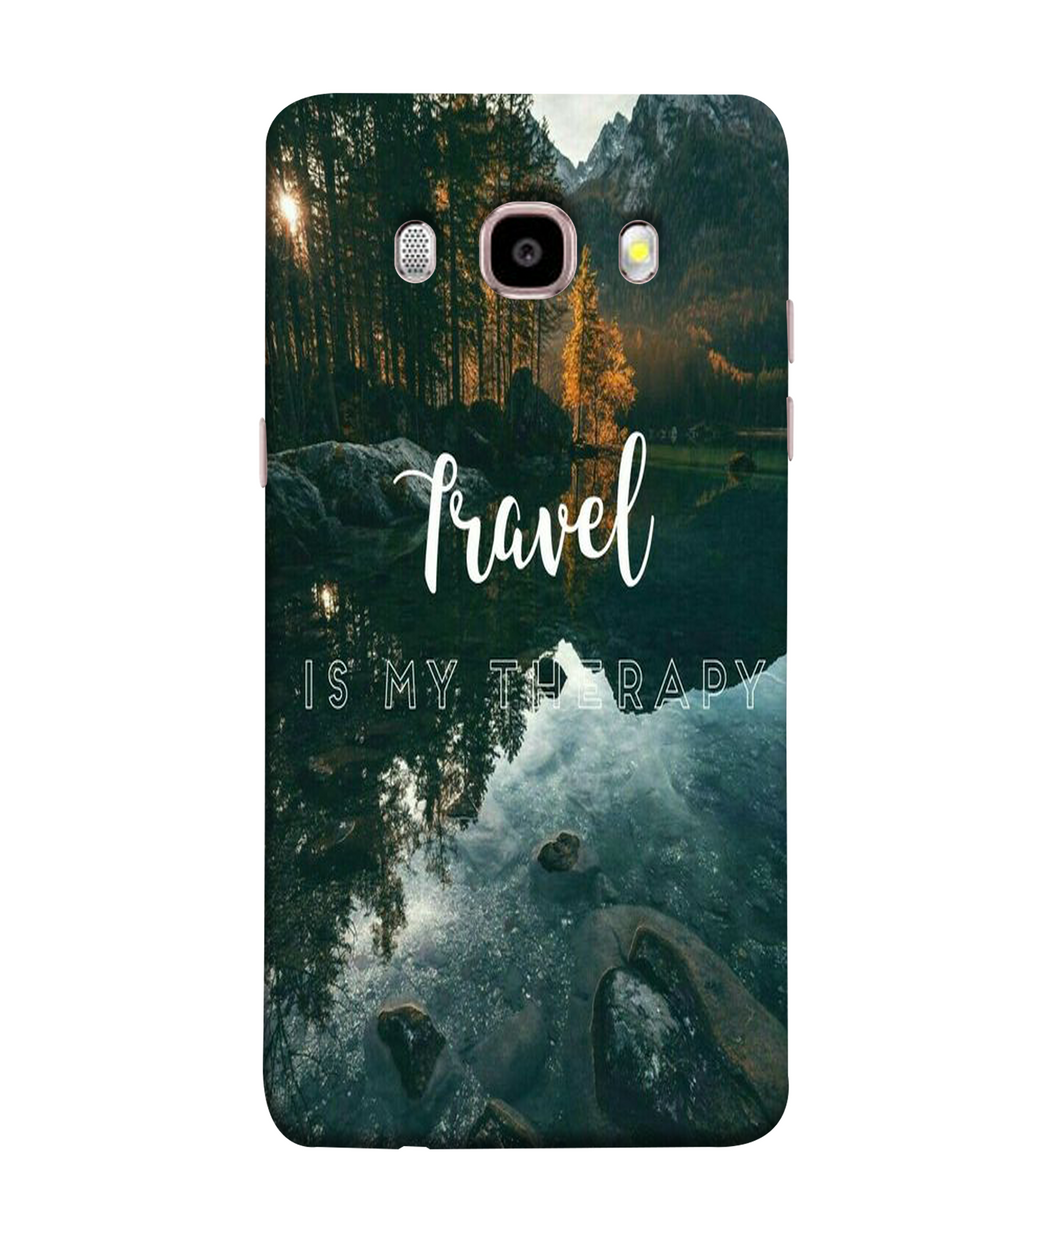 Samsung Galaxy J7-2016 Travel Mobile cover